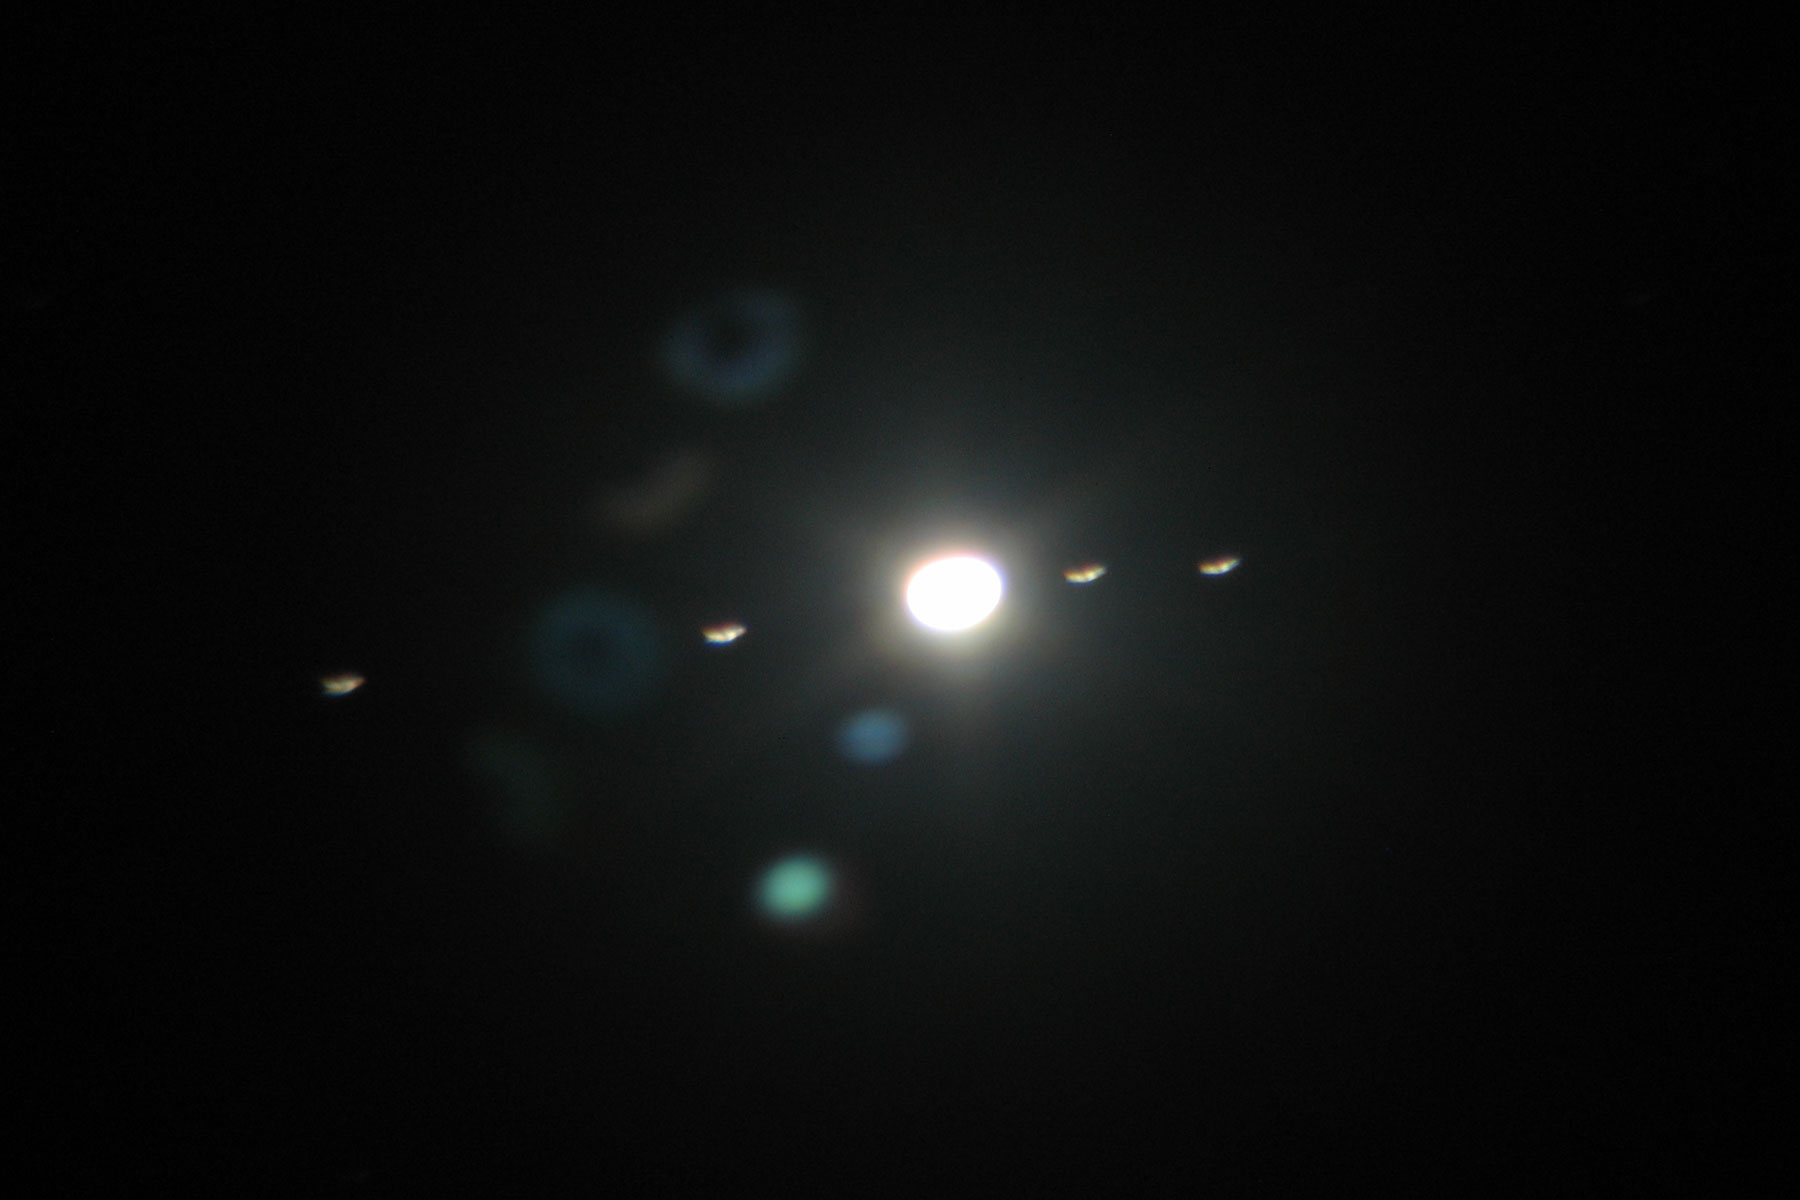 jupiter and moons through telescope - photo #8